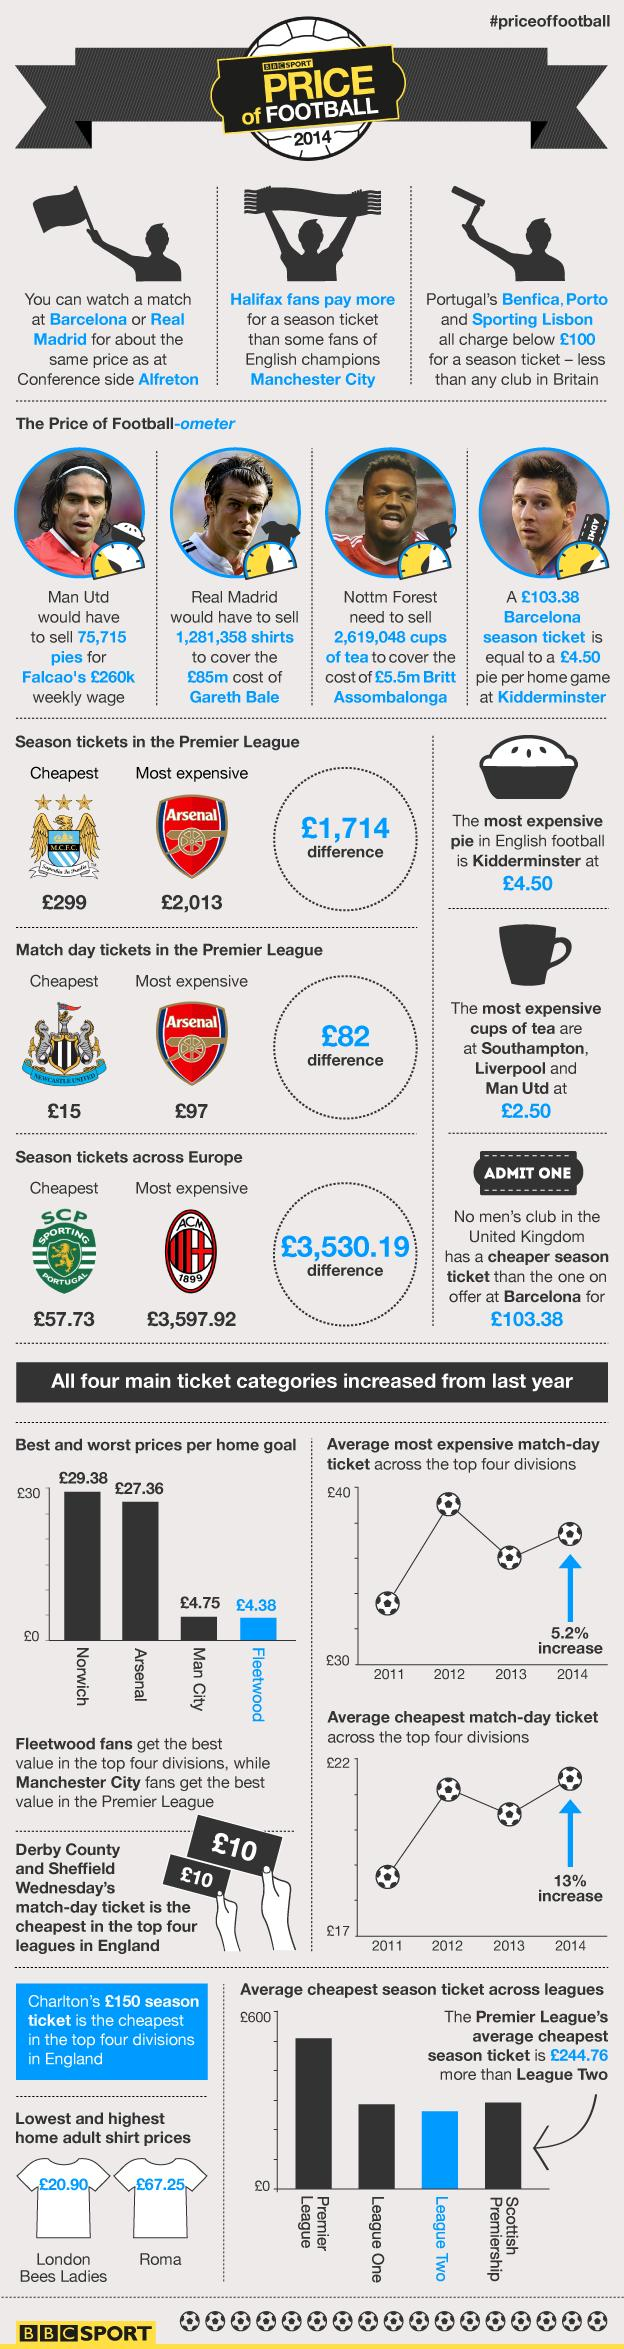 This is an infographic highlighting some of the key stats from the BBC Sport Price of Football survey. The information in this slide is available through the data tables and calculator page.